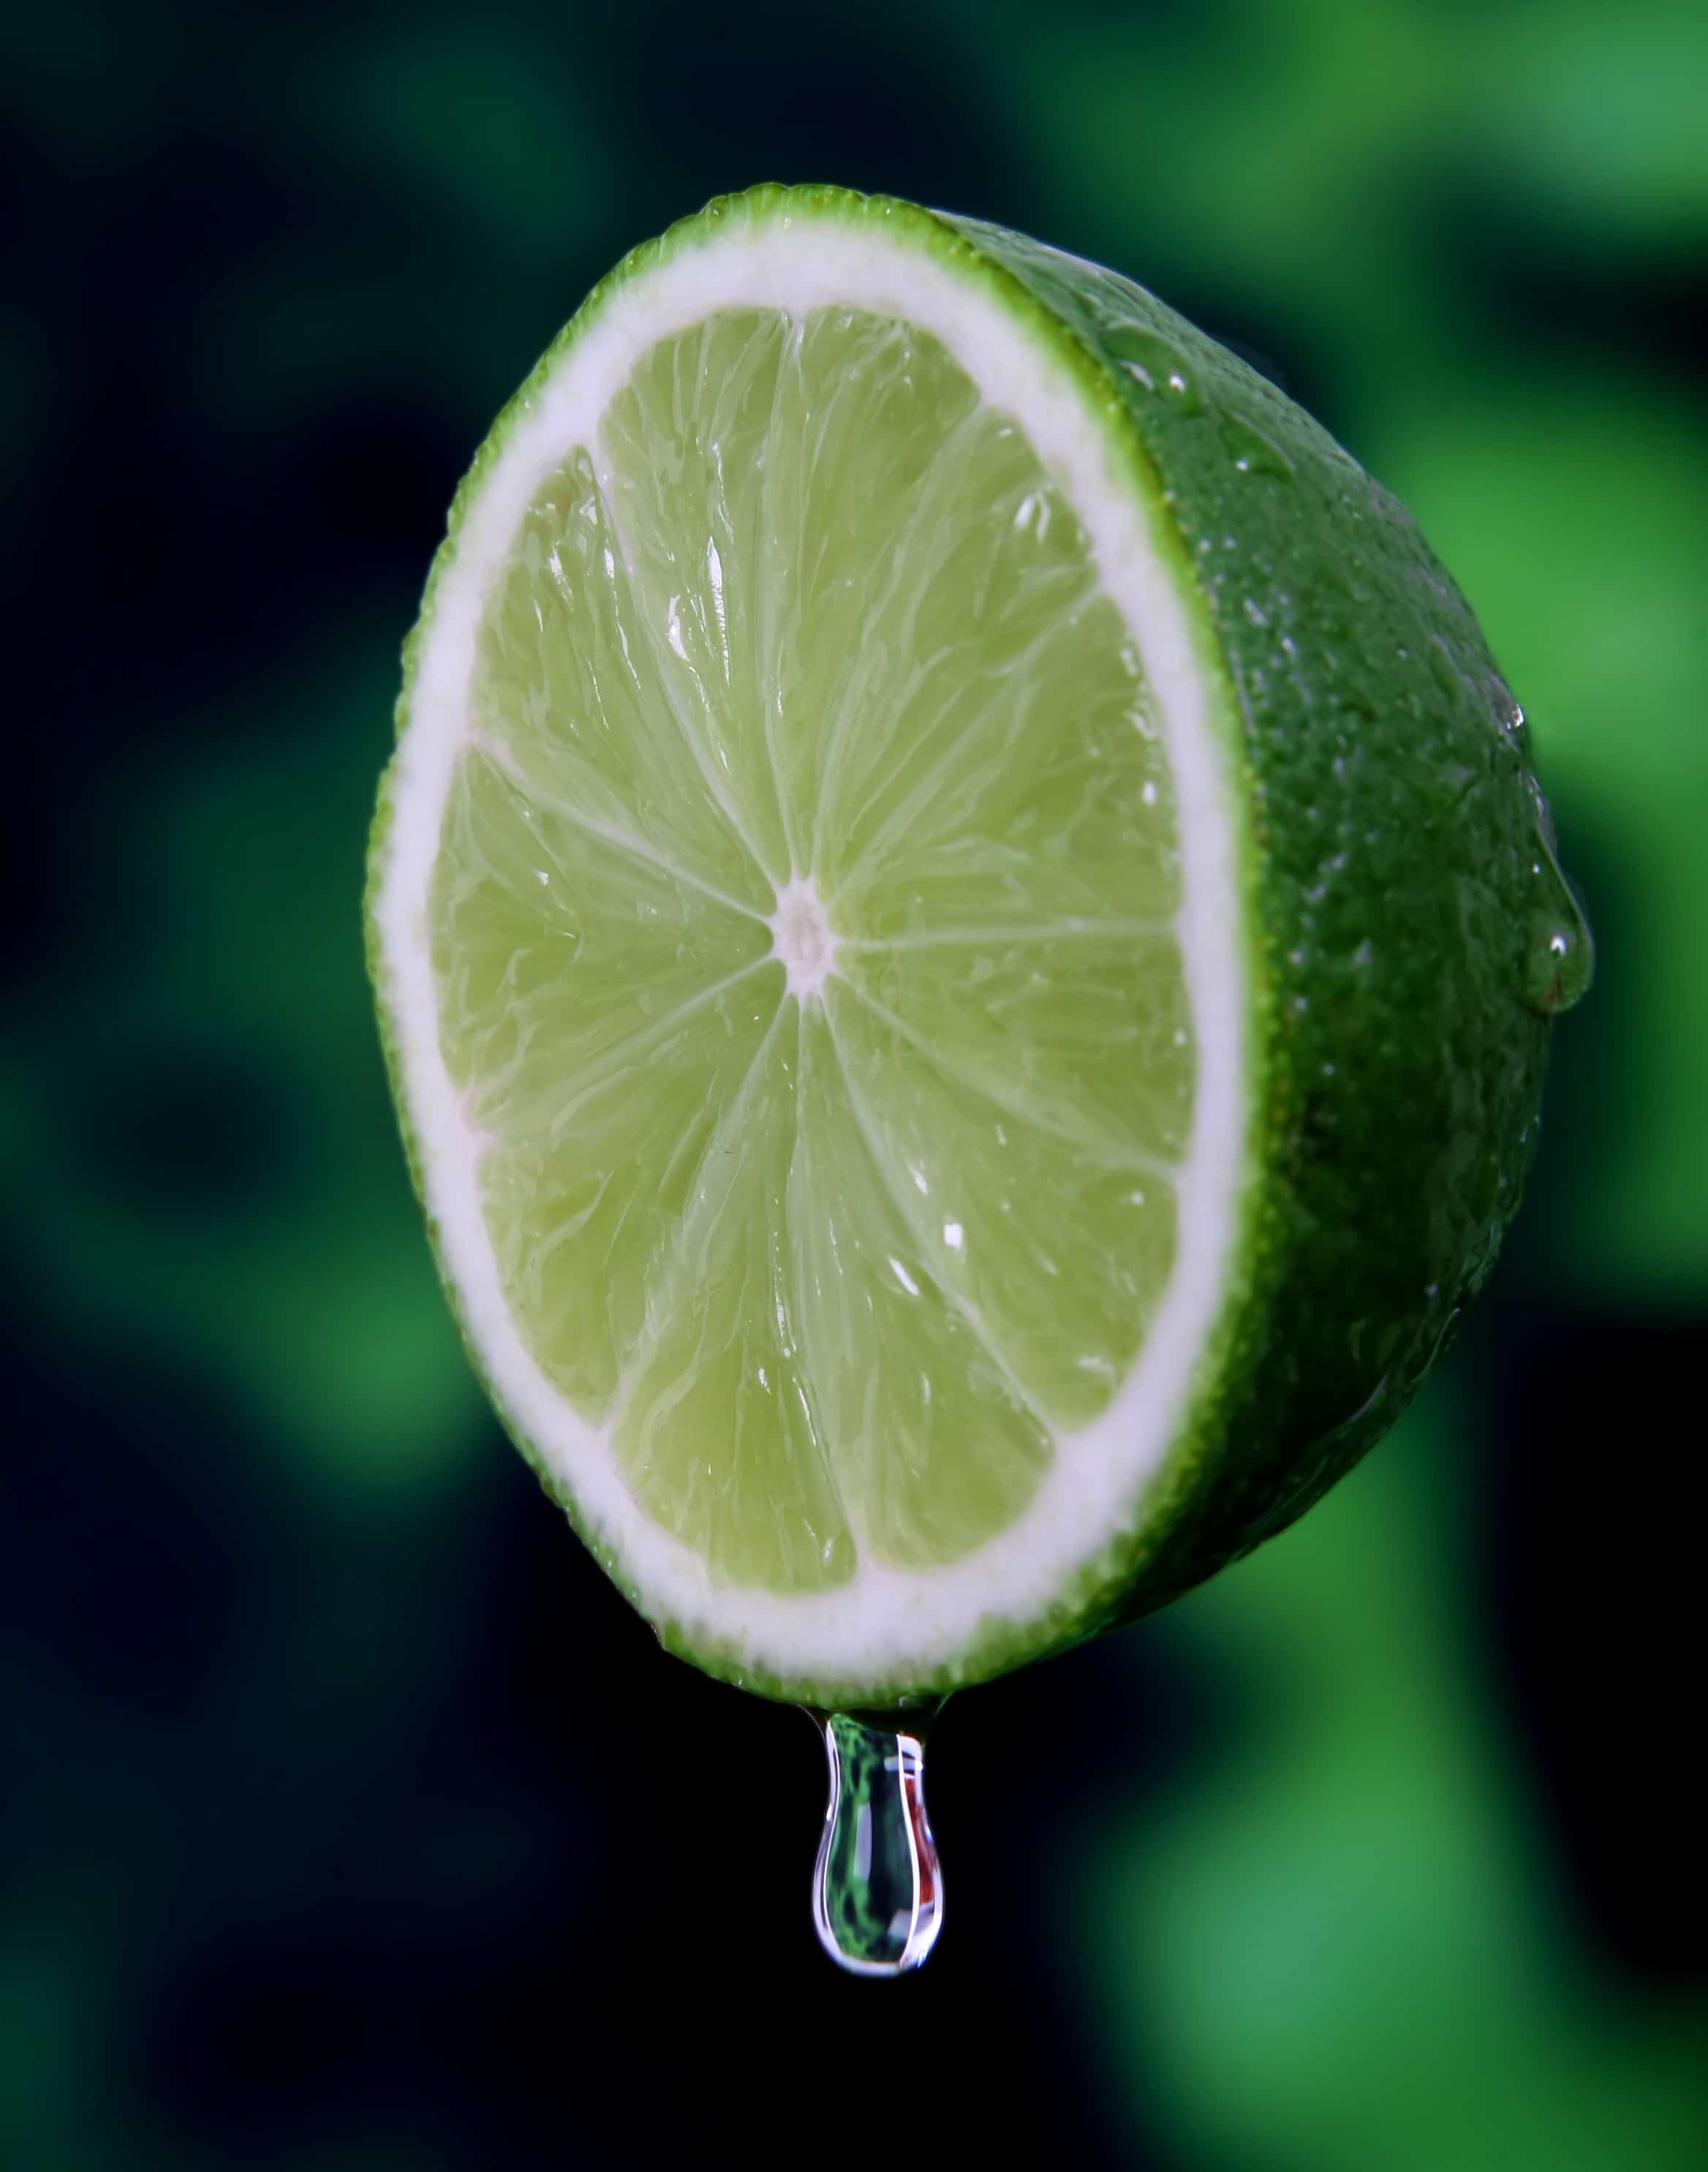 Lime juice clarifying rinse